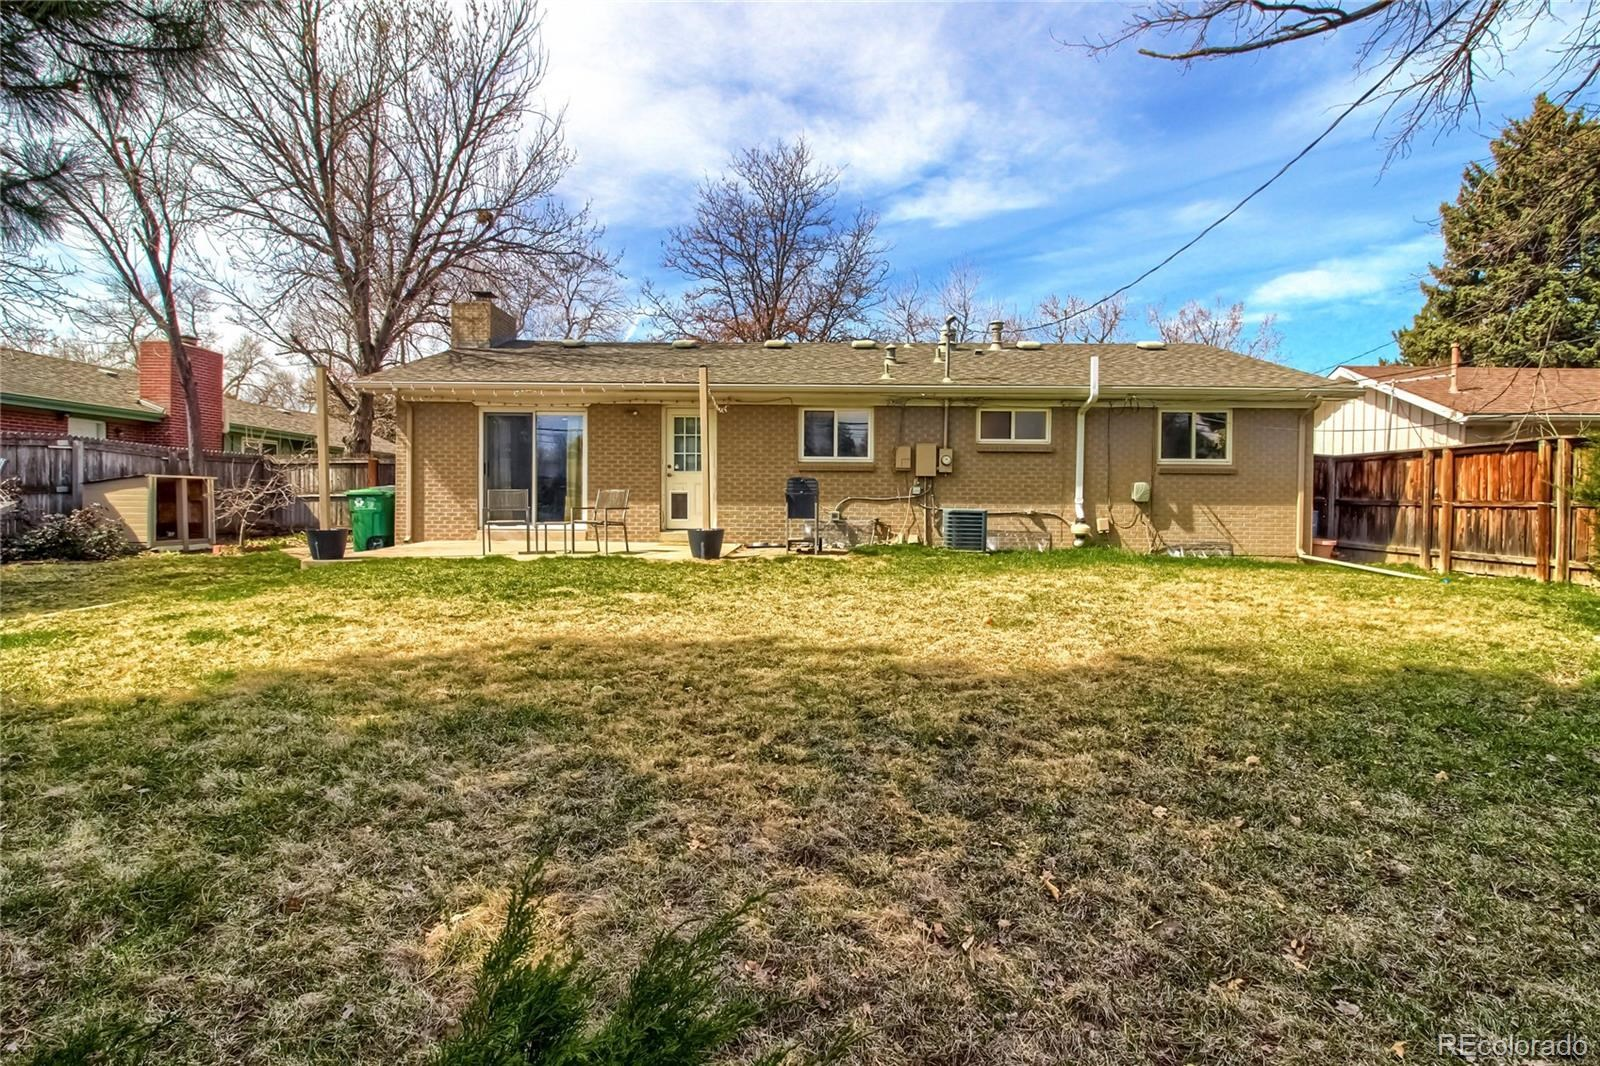 MLS# 8085723 - 430 S Poplar Way, Denver, CO 80224